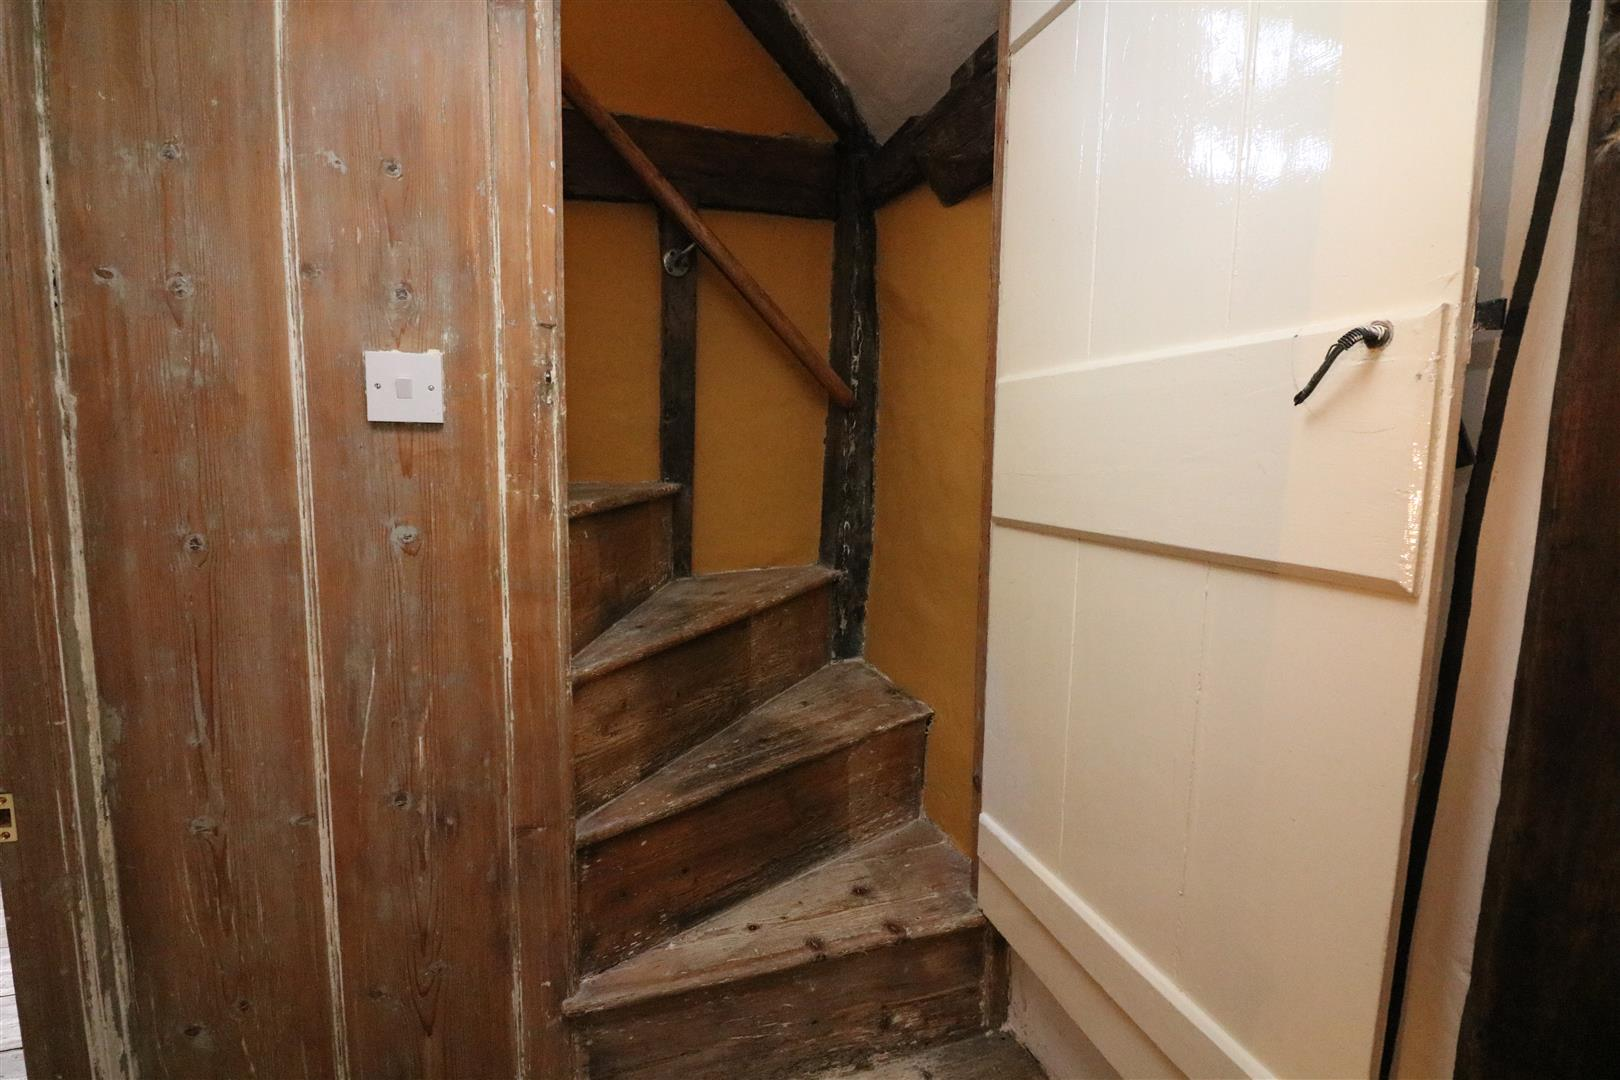 Stairwell to Attic